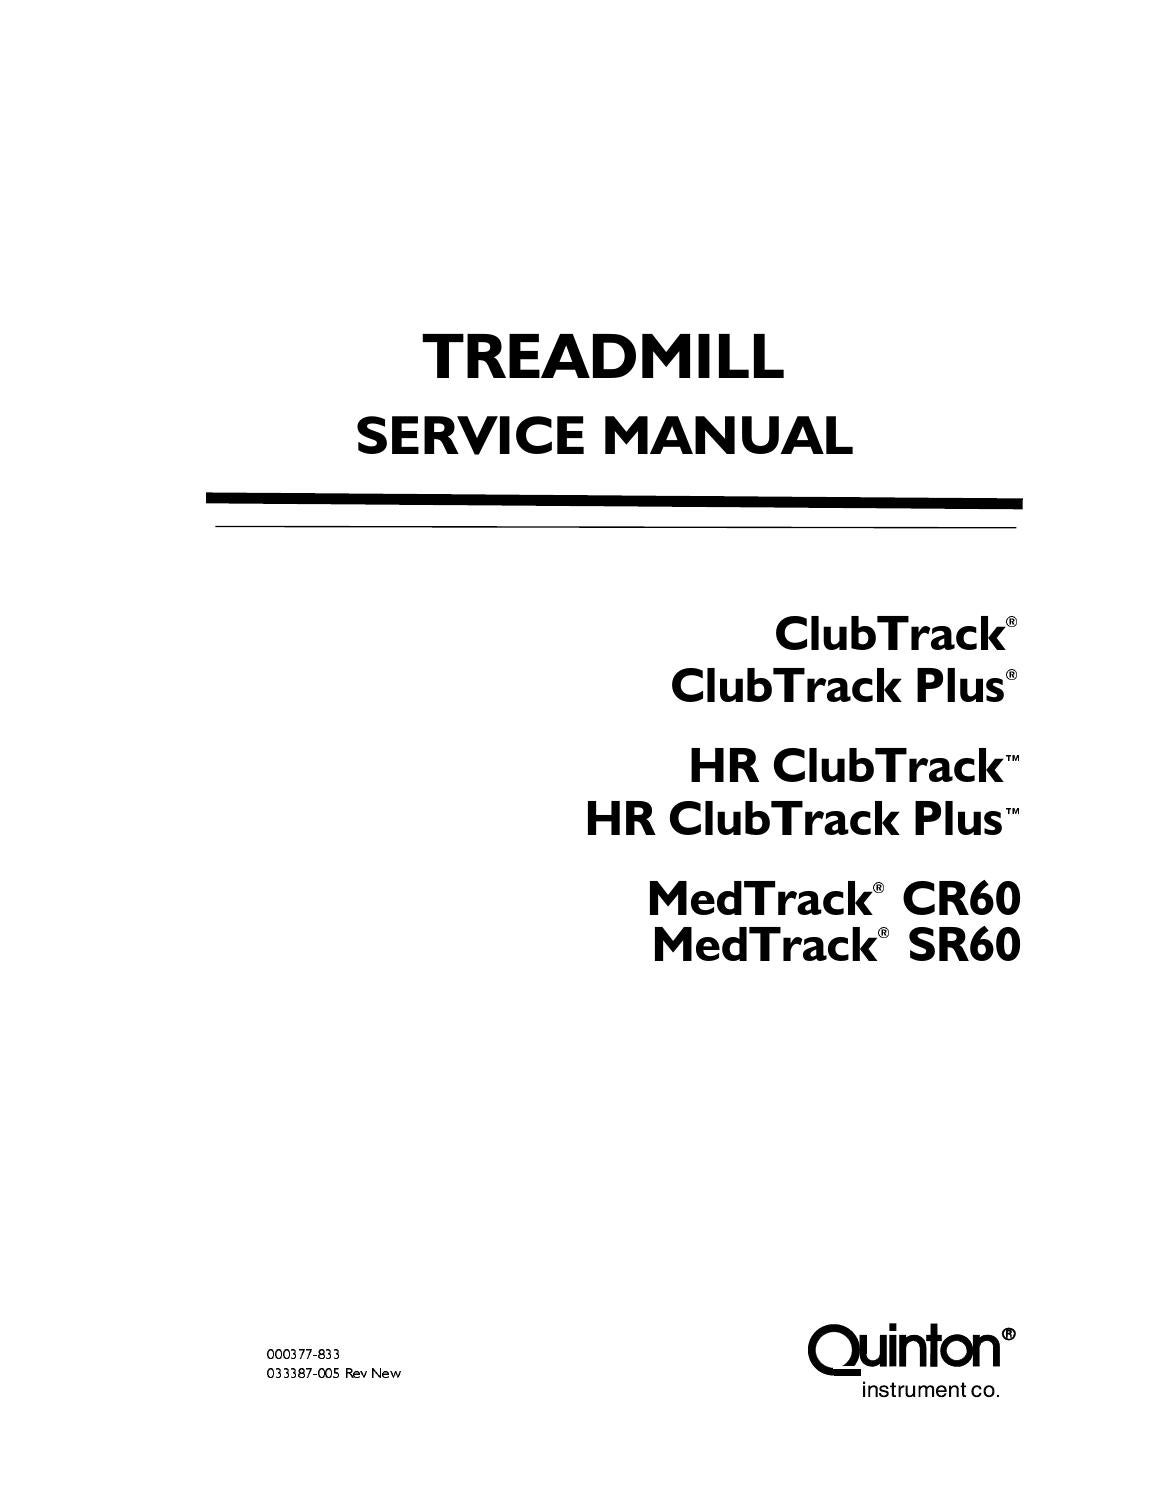 Product support quinton manuals hyperdrive service manual